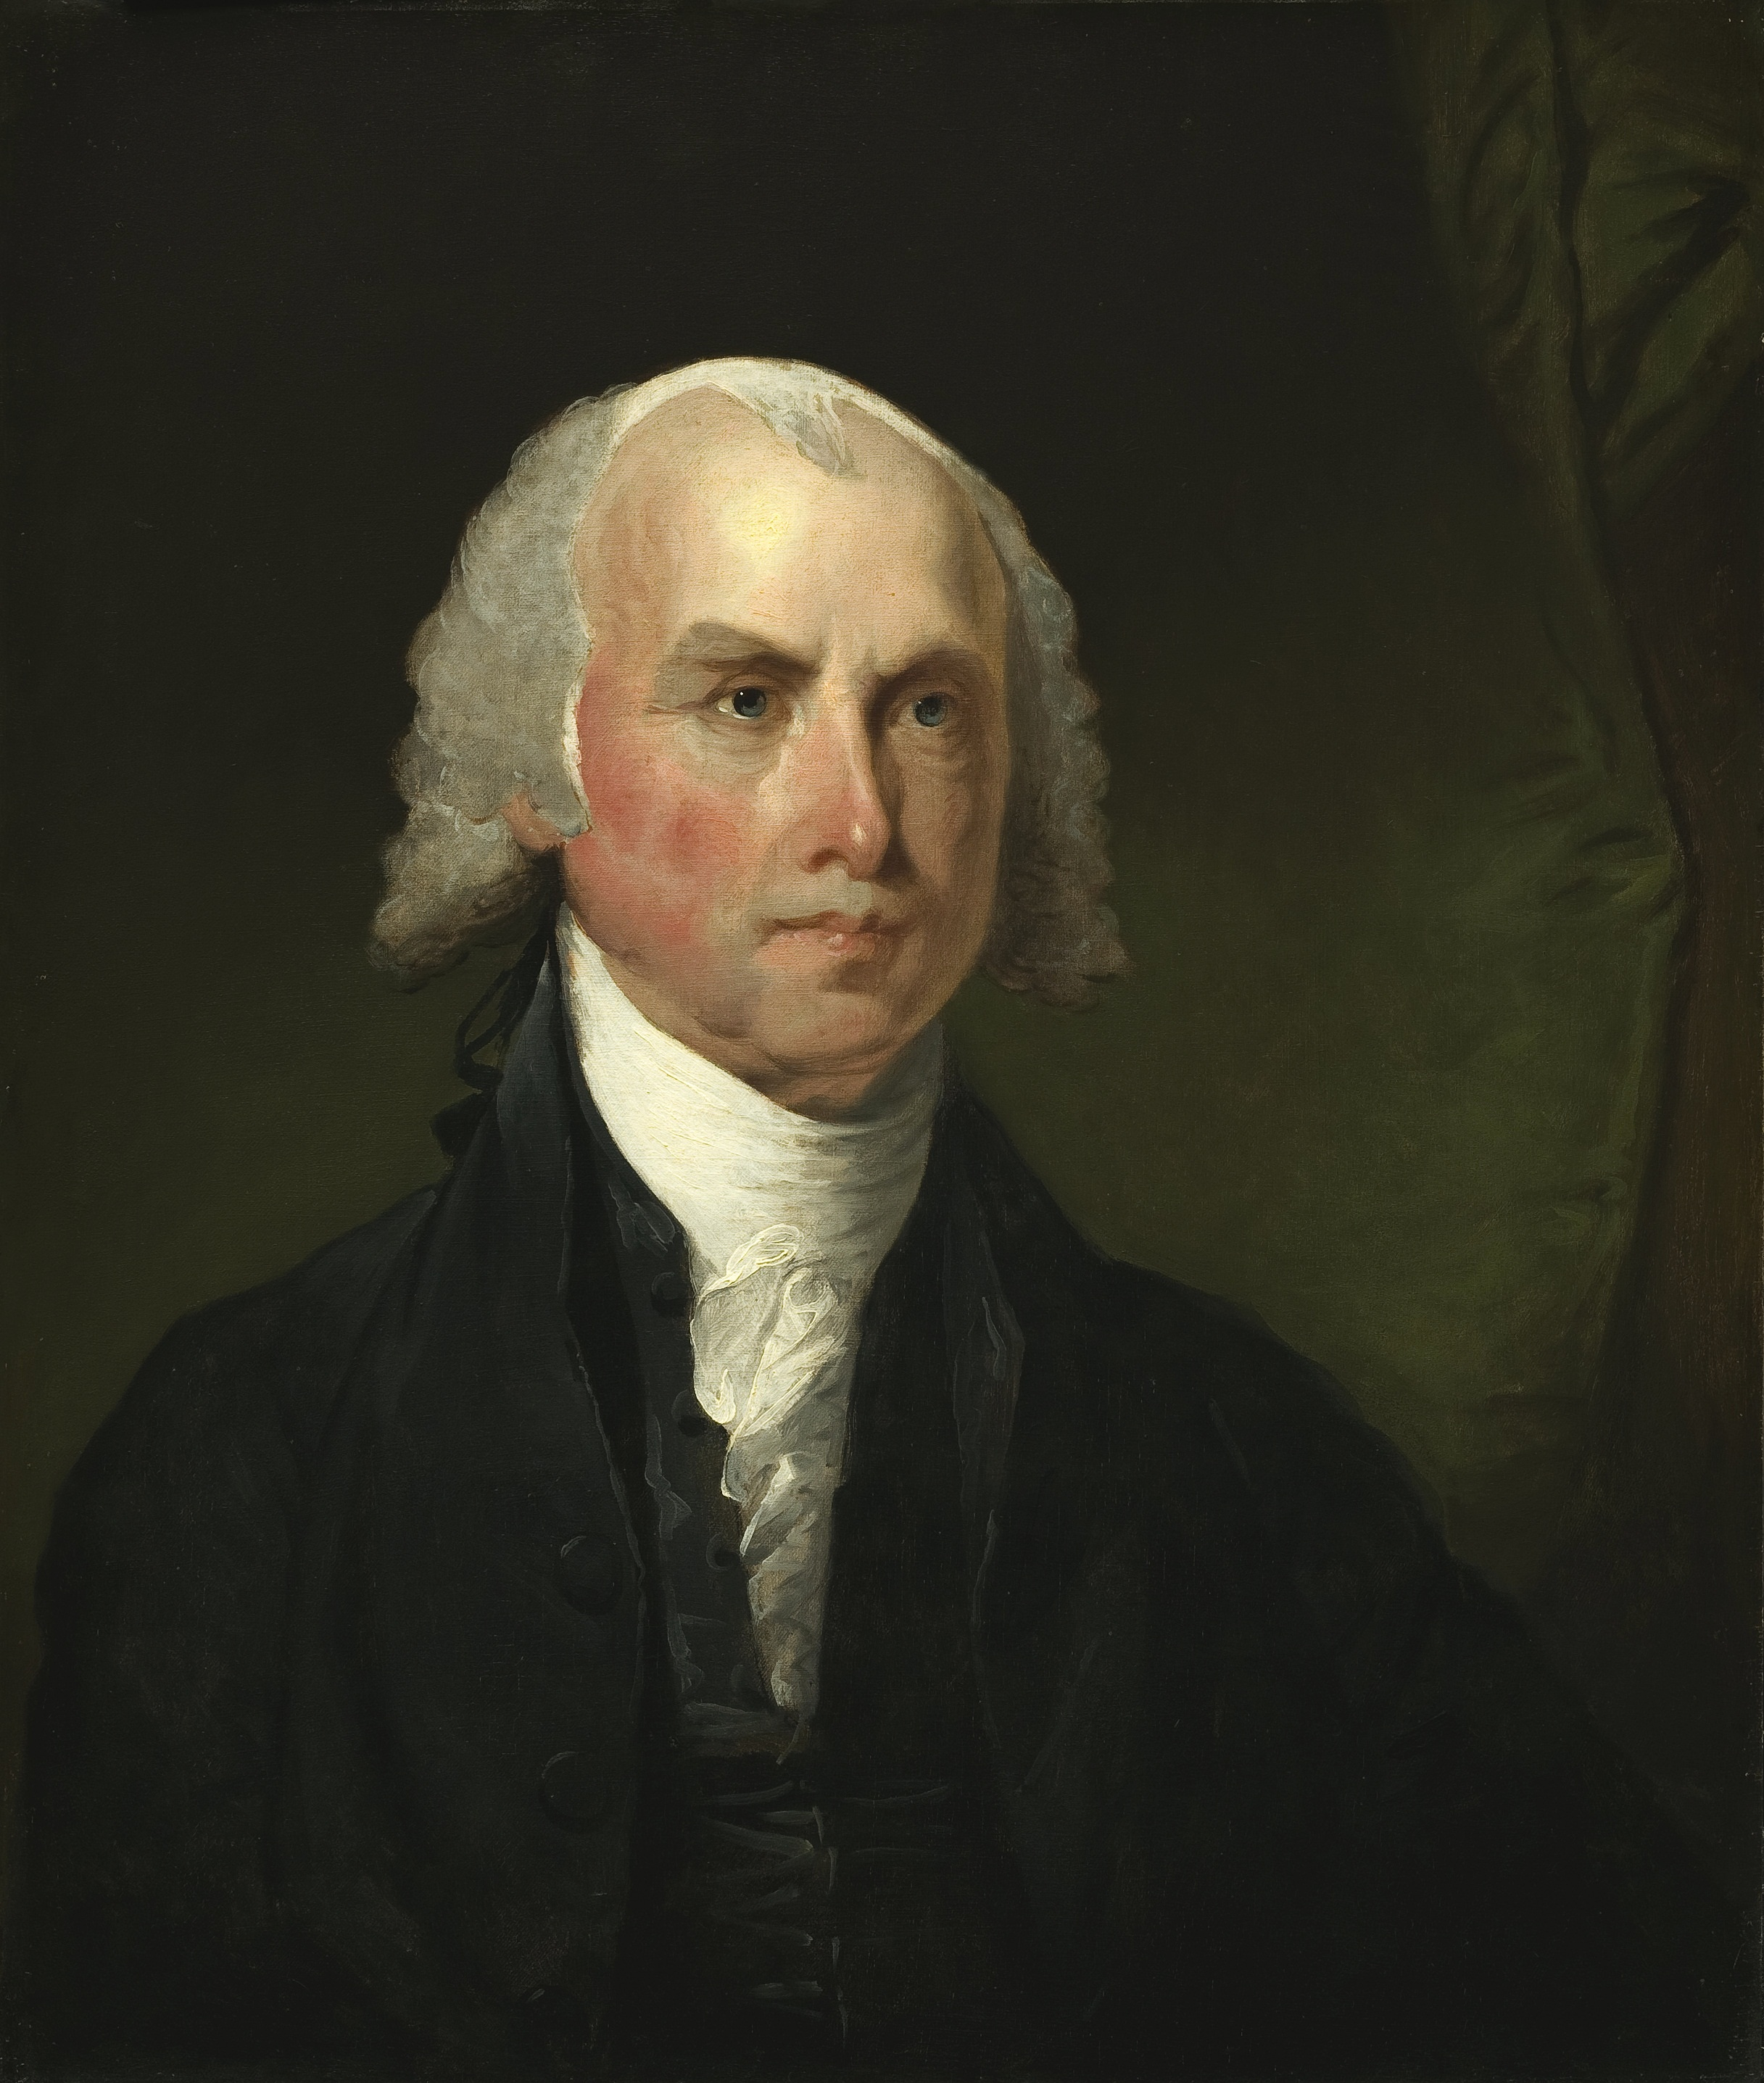 George washington biography summary